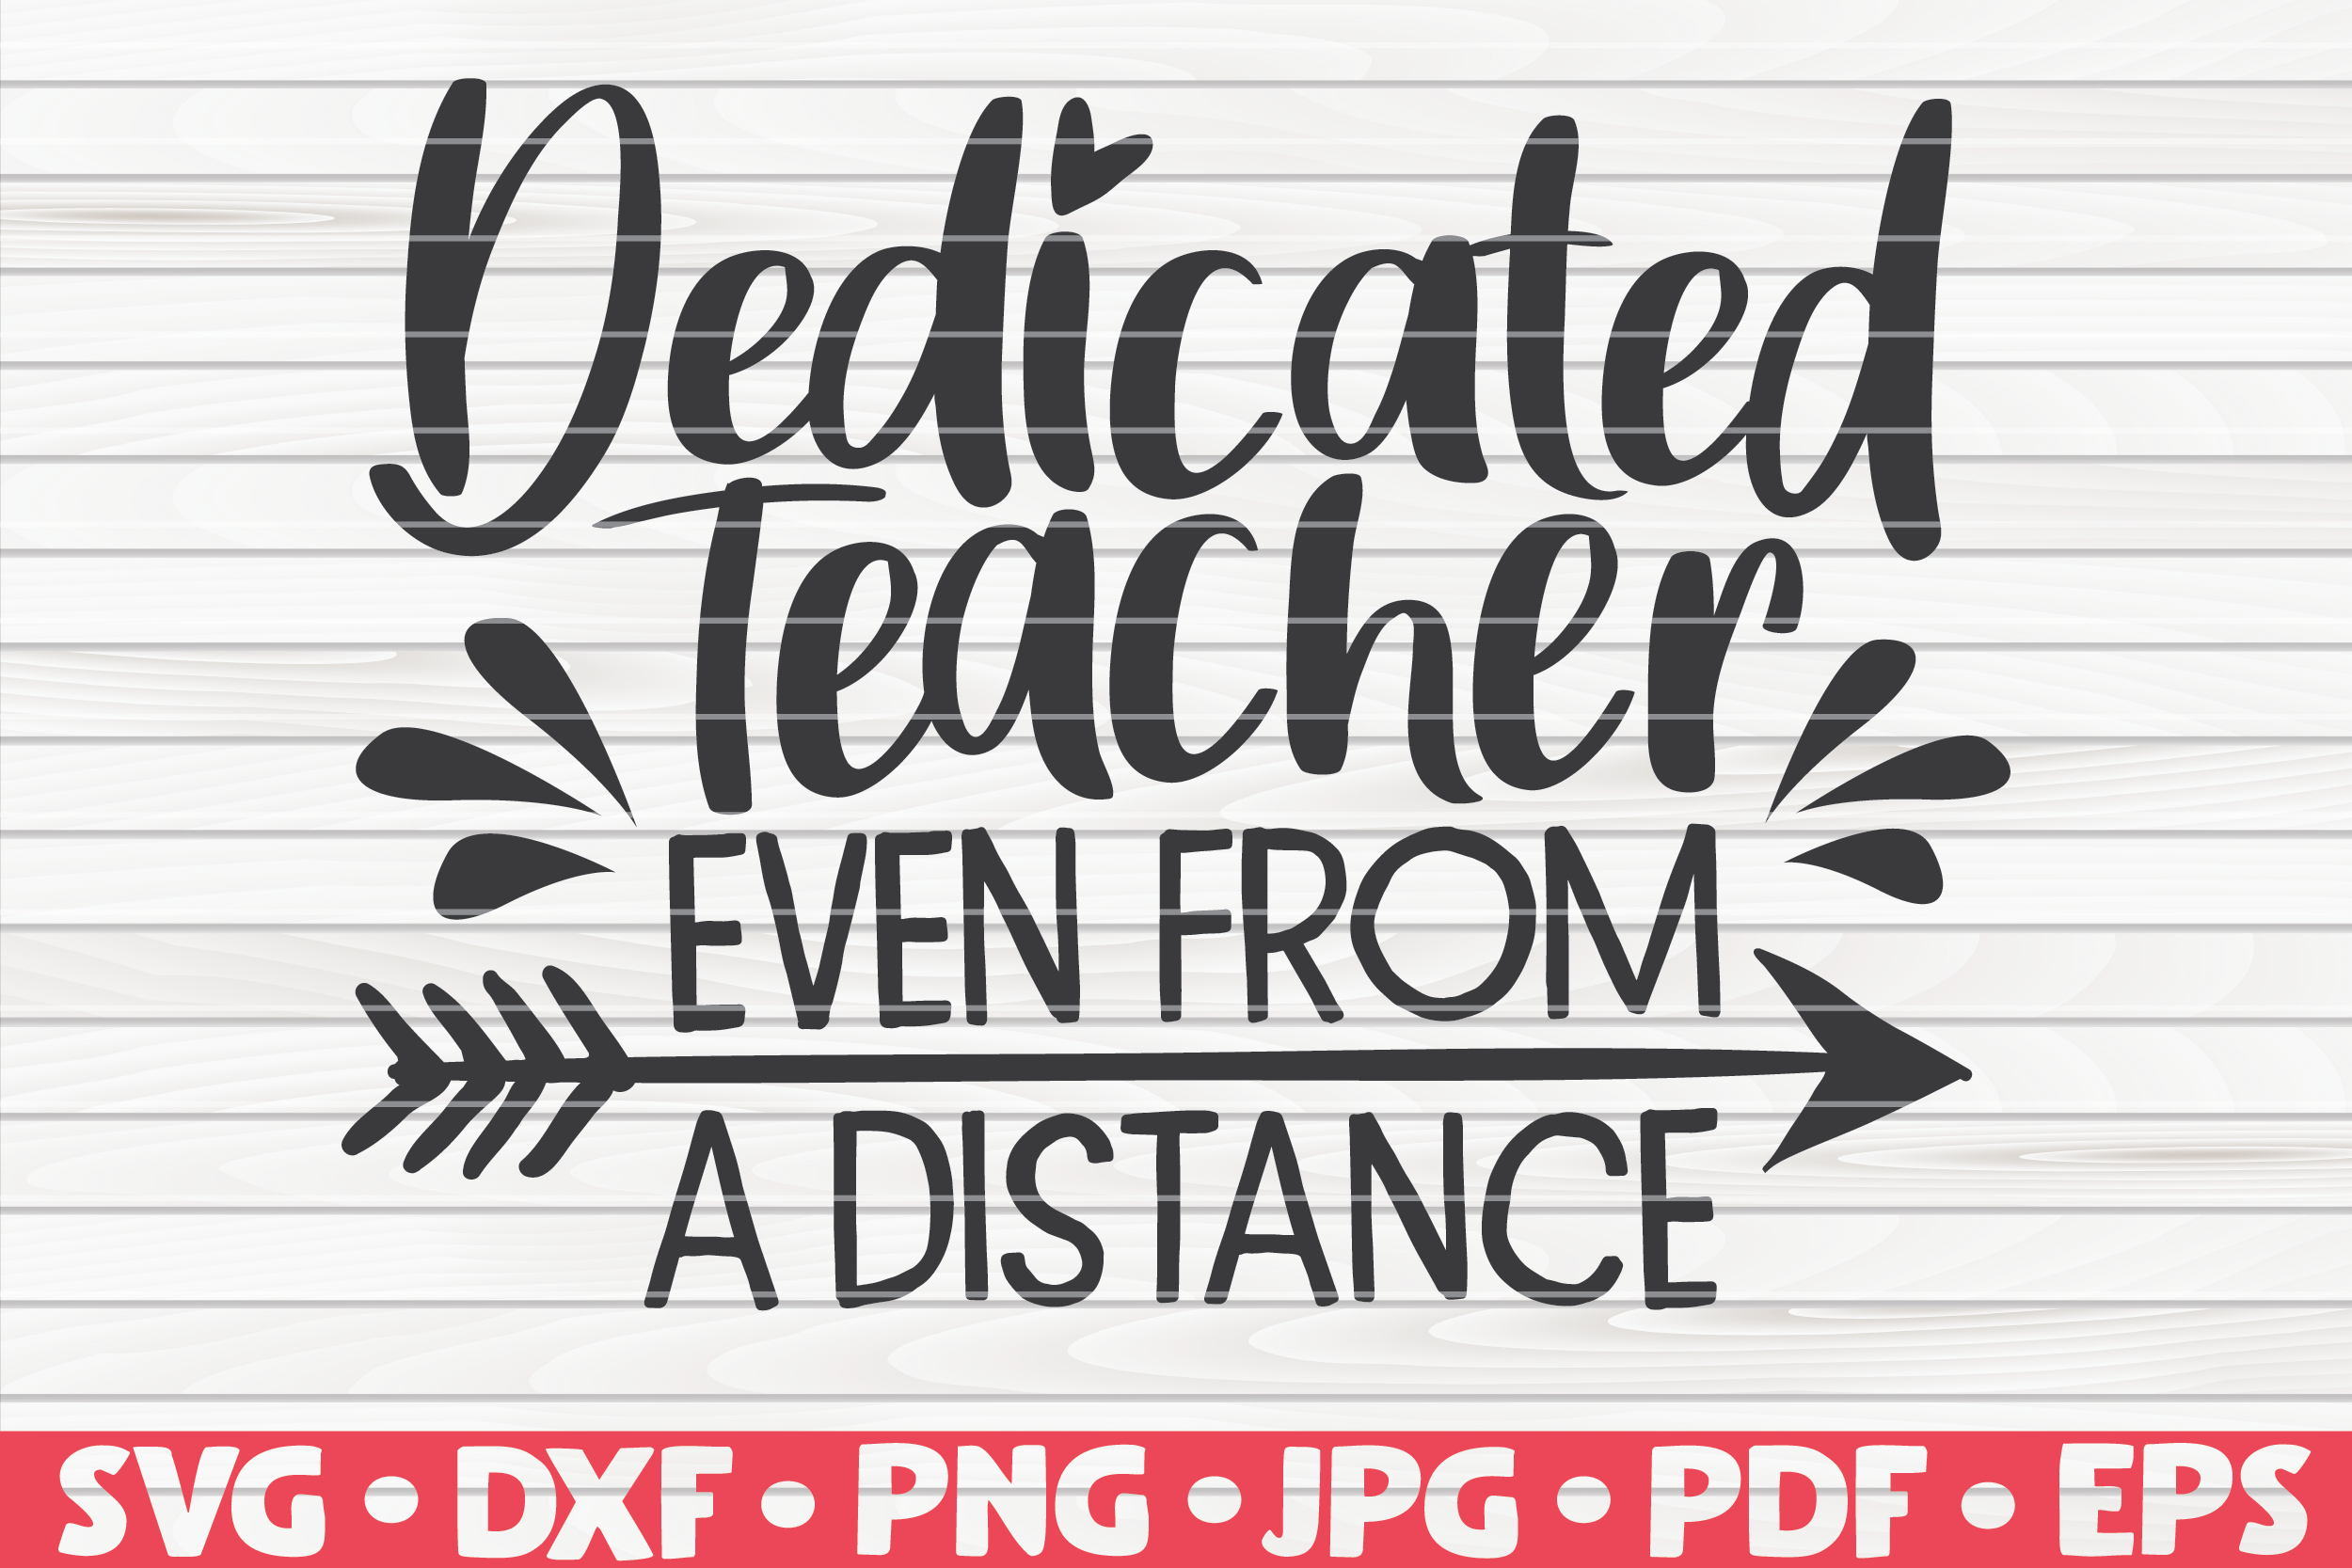 Download Free Dedicated Teacher Even From A Distance Graphic By Mihaibadea95 Creative Fabrica for Cricut Explore, Silhouette and other cutting machines.